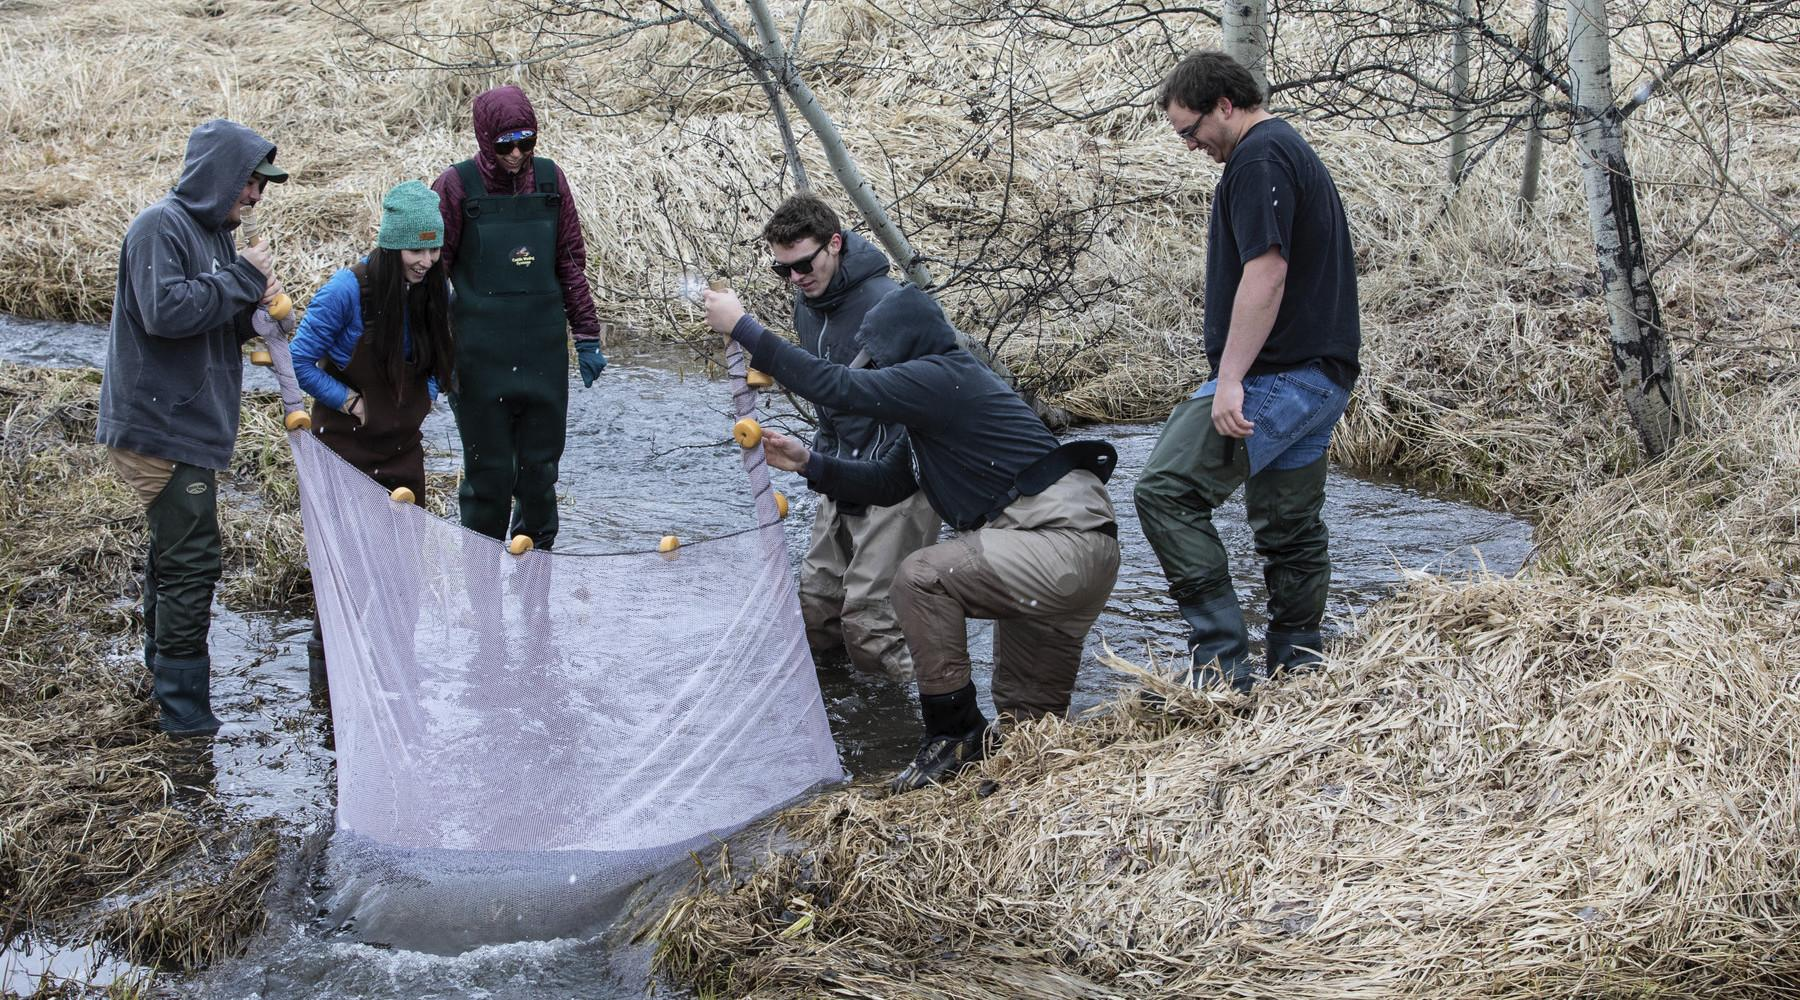 Students work in a stream during a class in the field